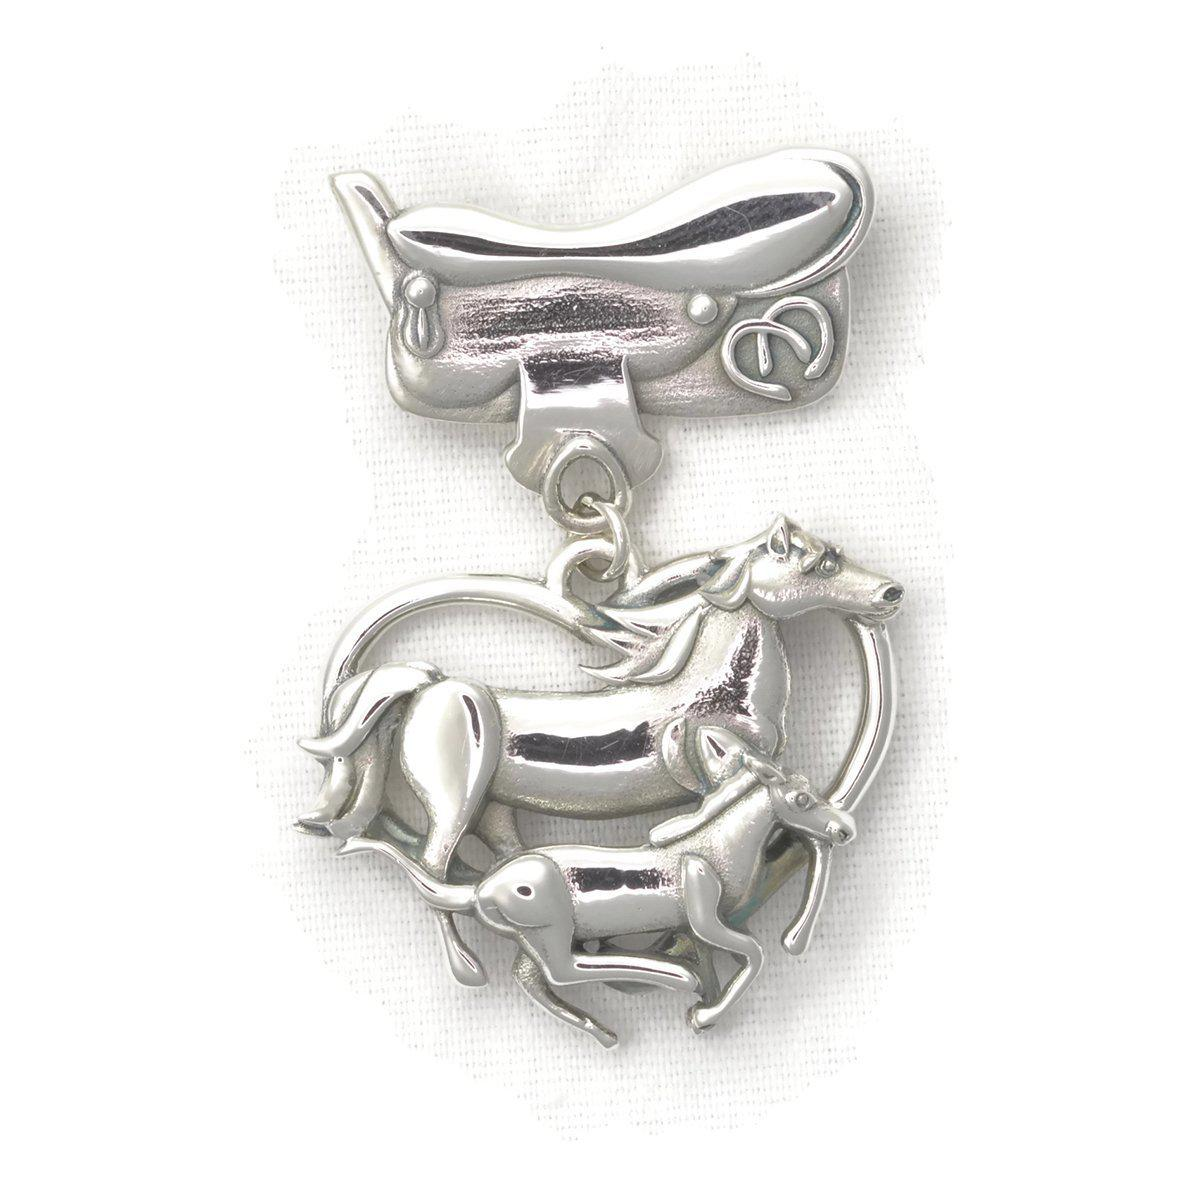 Donna Pizarro Designs Sterling Silver Horse Brooch With Saddle And Desert Cactus aANQyhpGAa